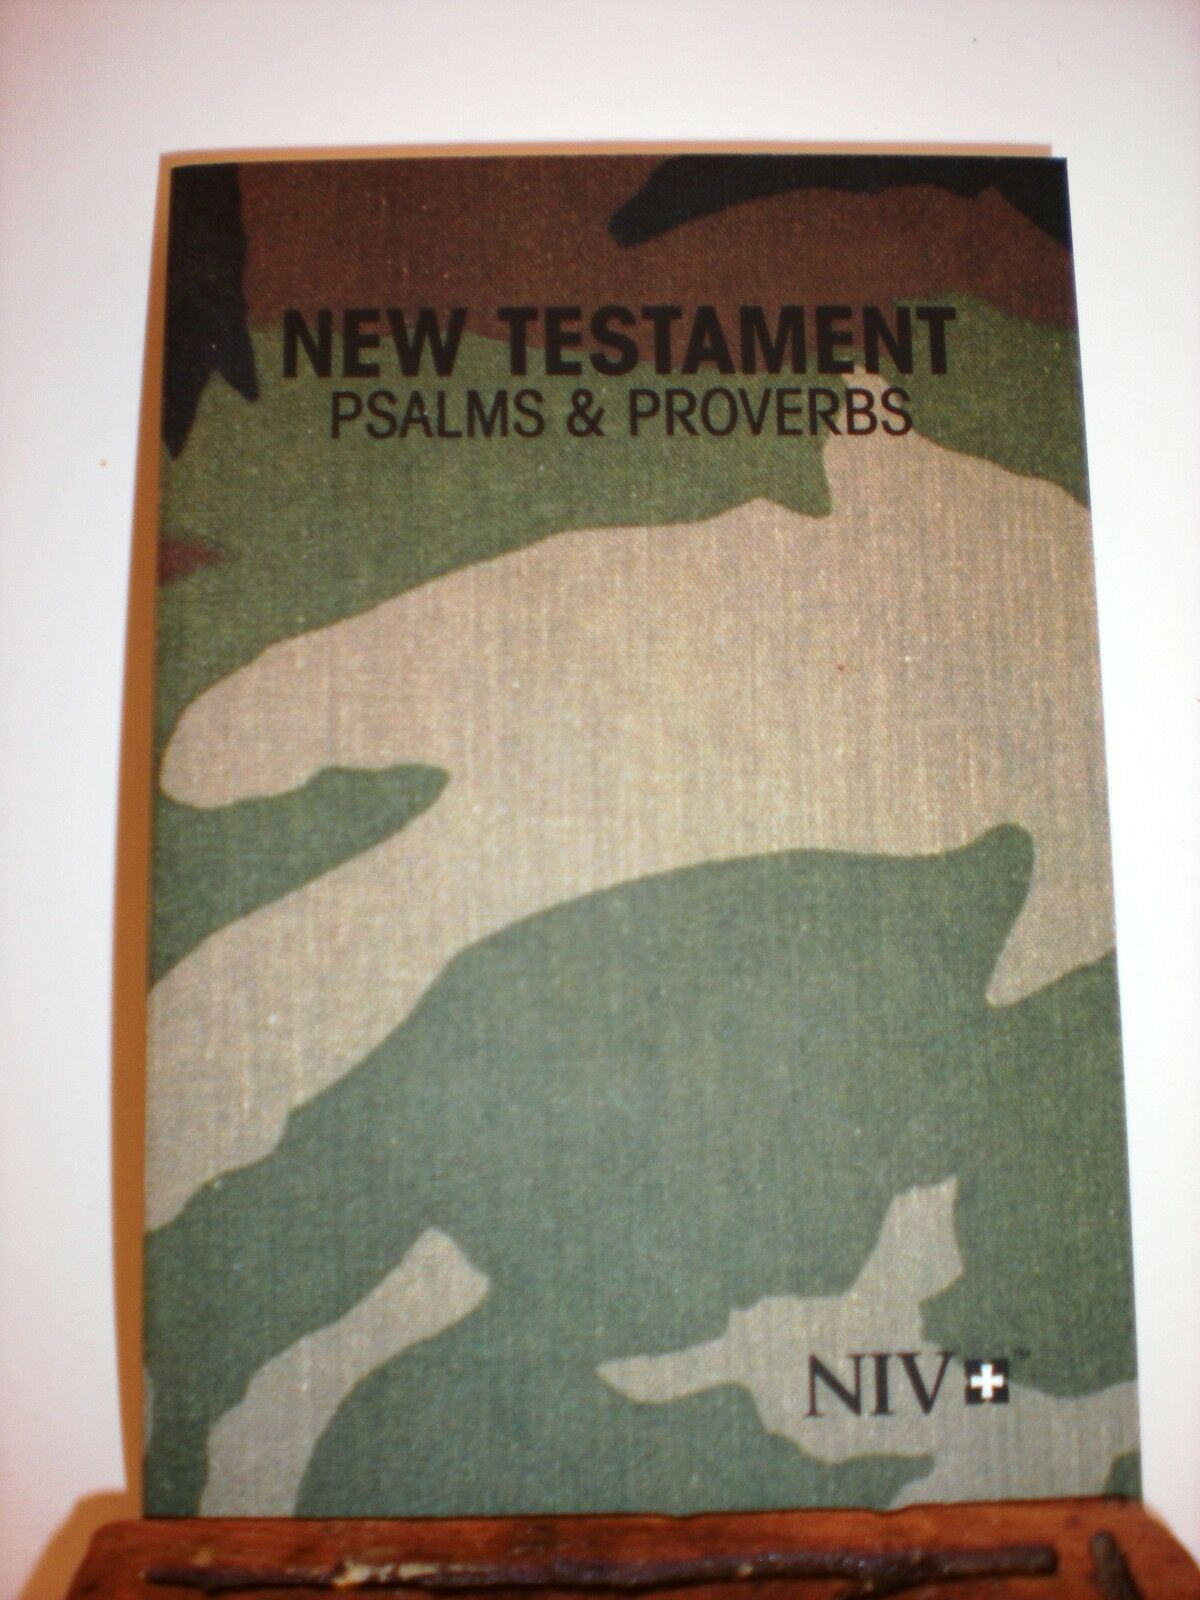 LOT OF 2 ~ CAMO COLORED POCKET NIV NEW TESTAMENT PSALMS & PROVERBS ~ BRAND NEW |